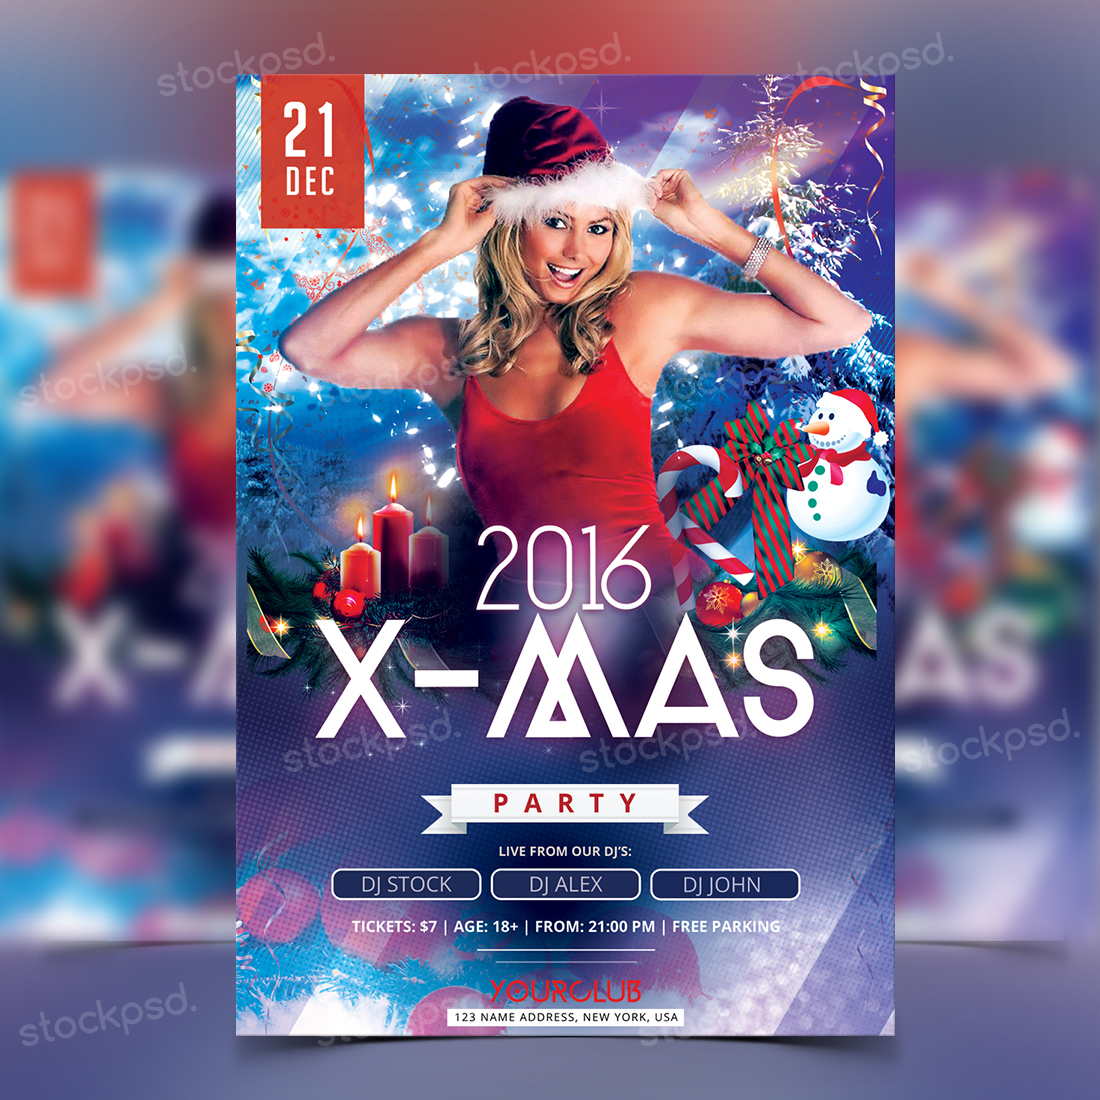 2016 x mas party psd flyer on behance psd flyer for christmas party or new year 2016 psd file to for here